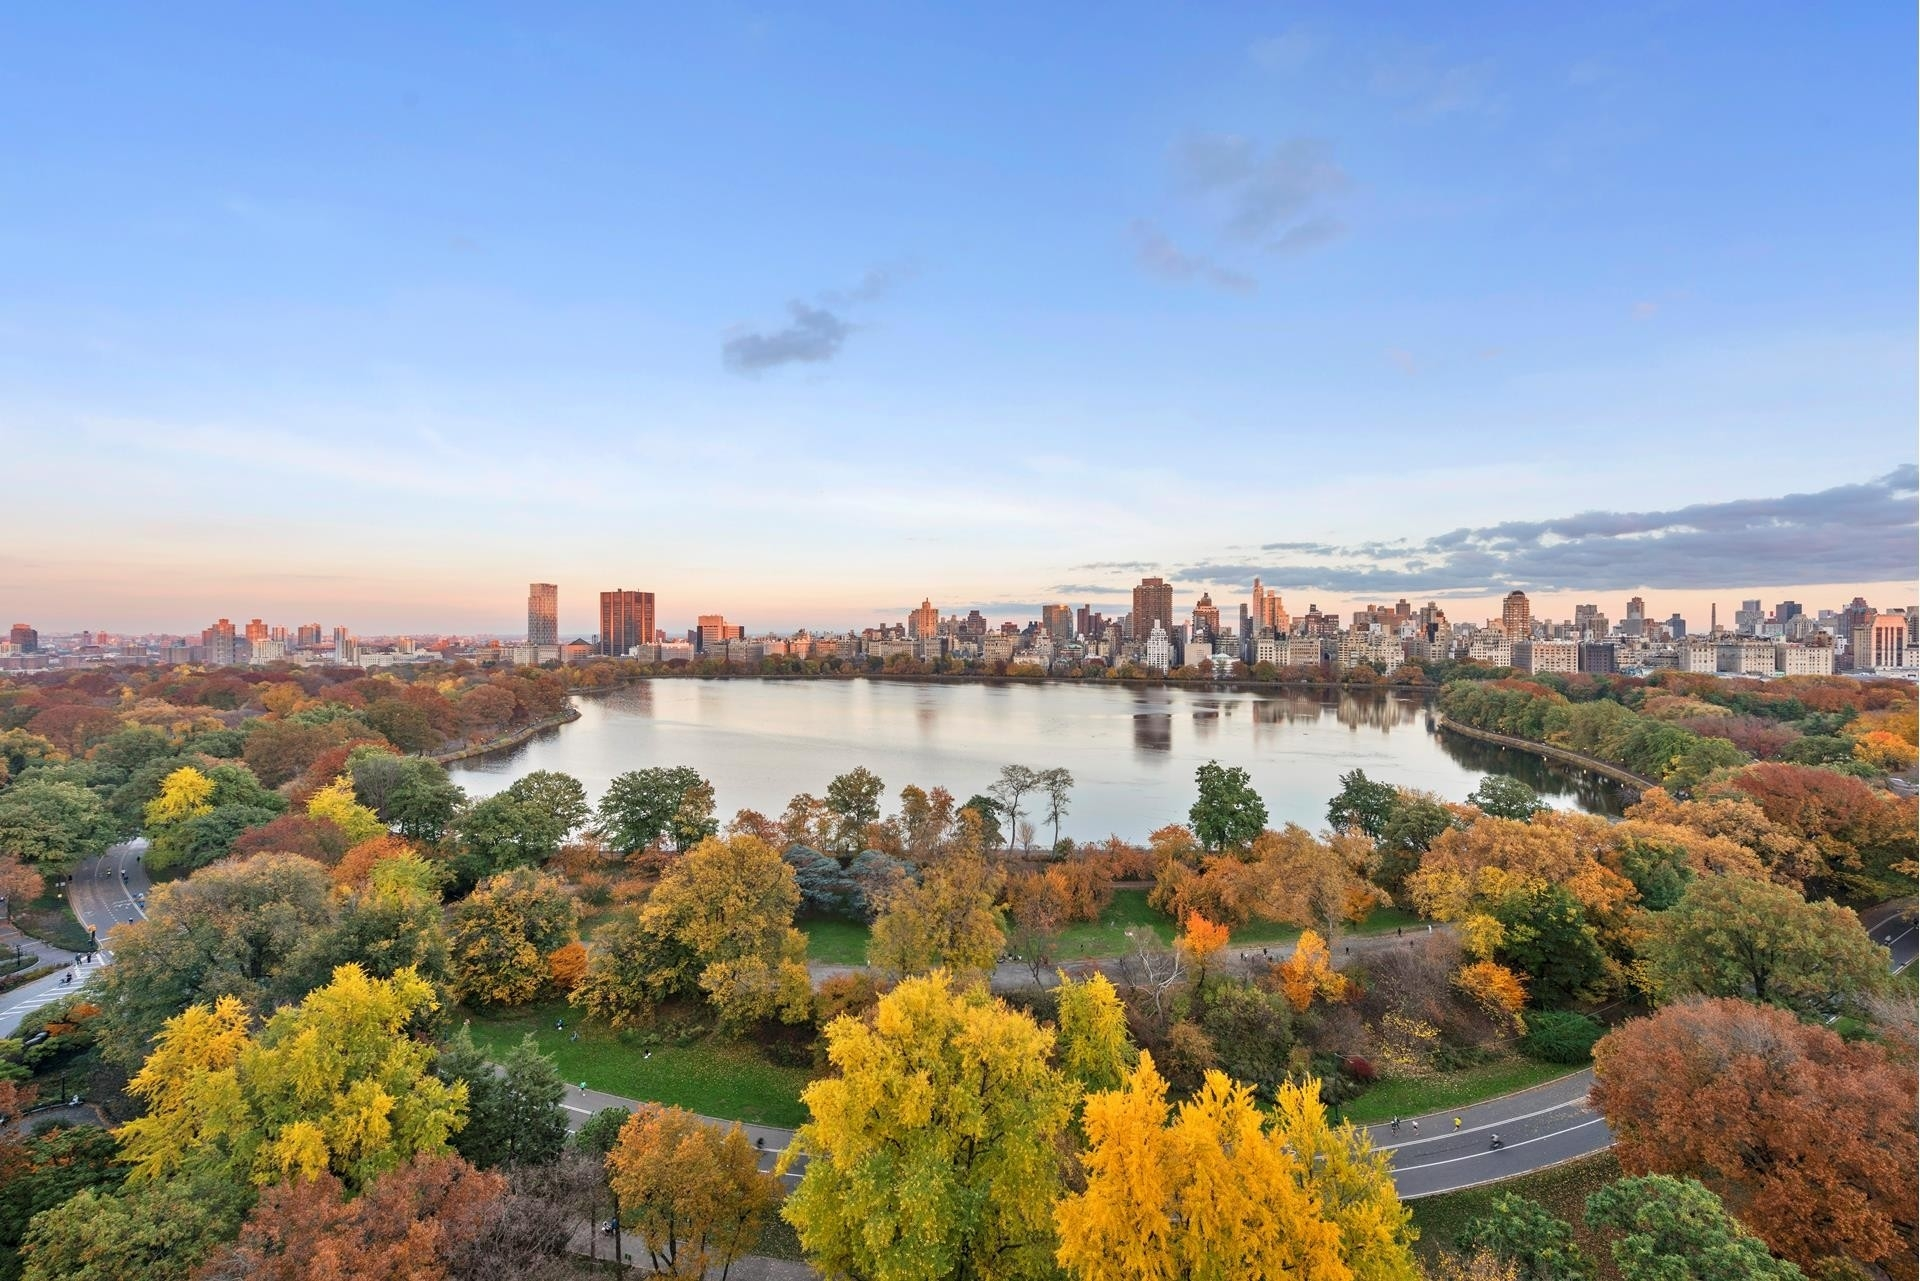 3. Condominiums for Sale at 279 CENTRAL PARK W, PHBA Upper West Side, New York, NY 10024